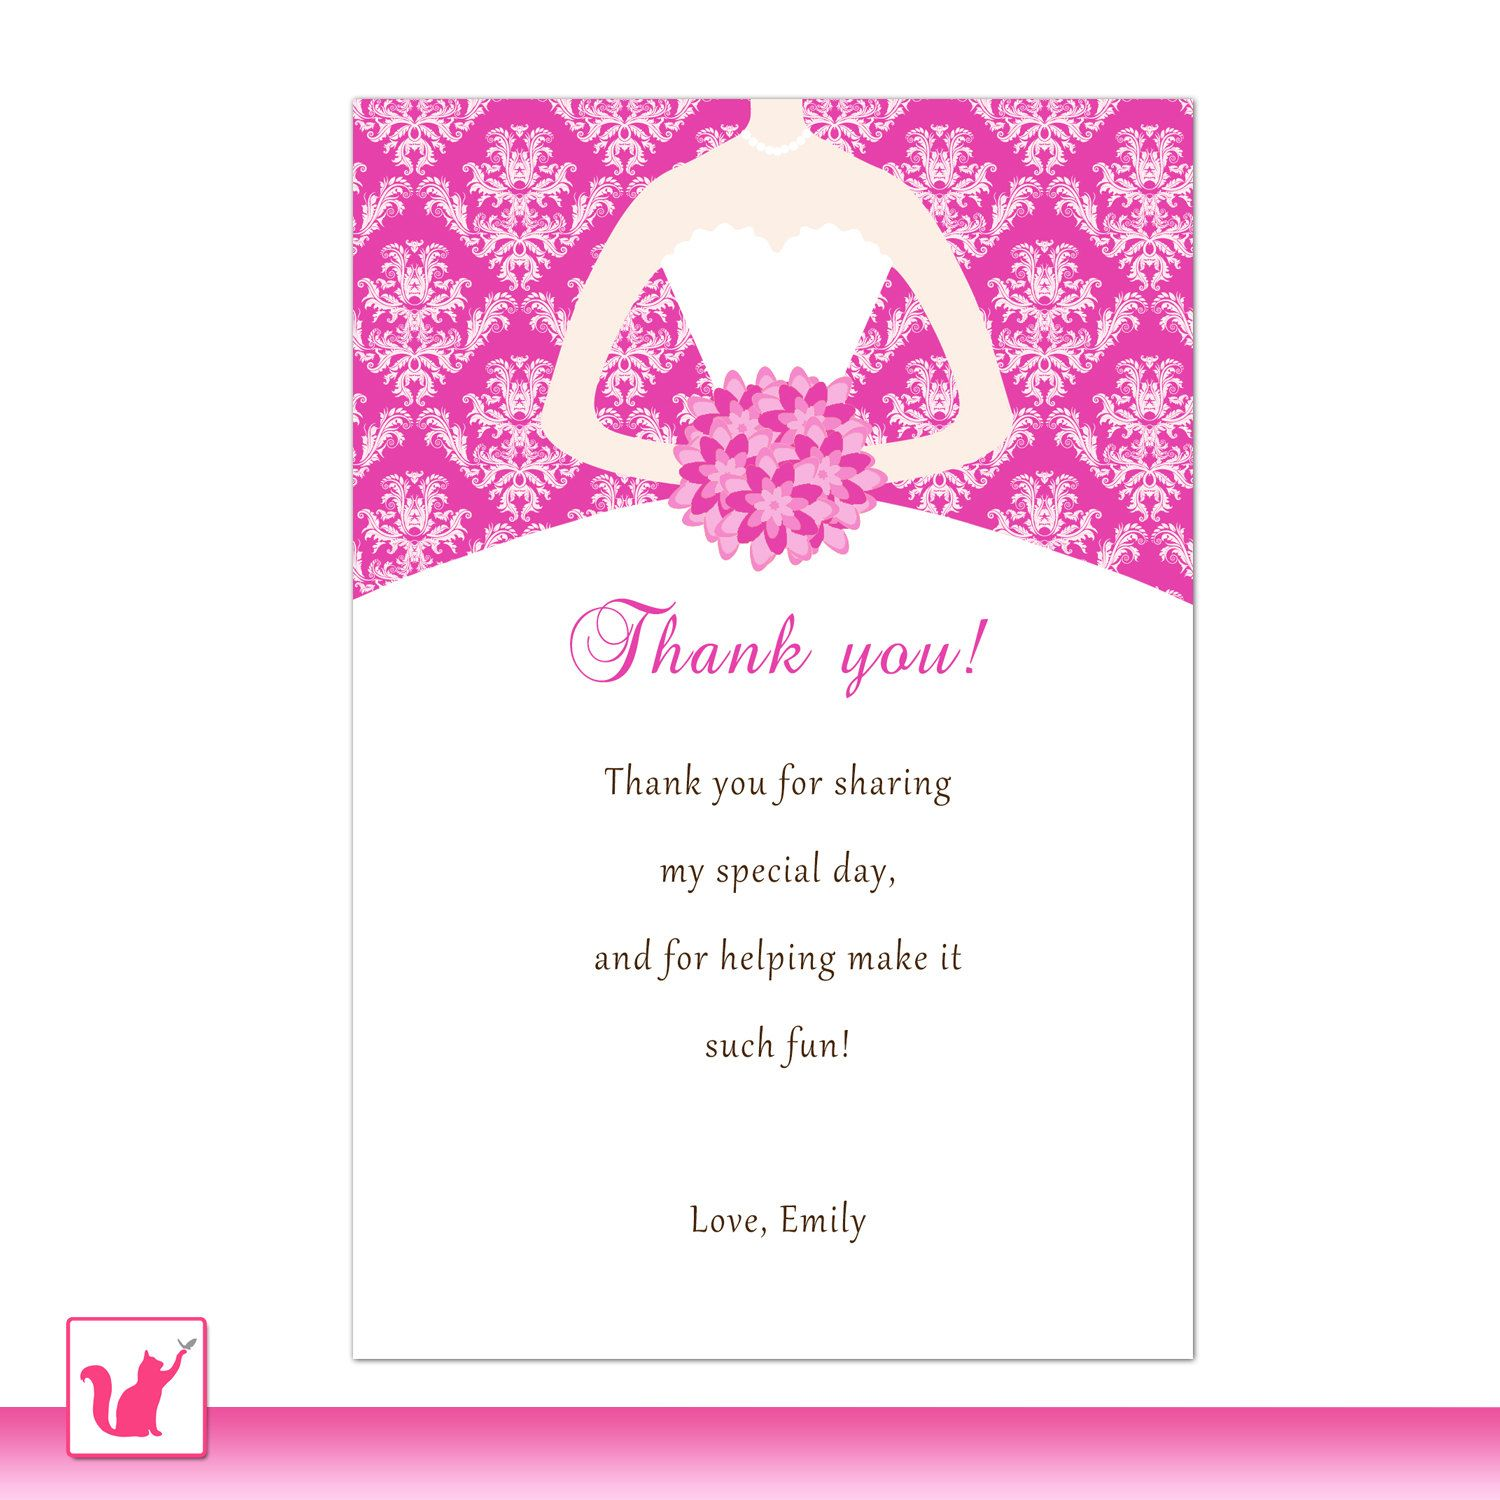 Wedding Gift Card Quotes: Bride Dress Bridal Shower Thank You Card Hot Pink Thank